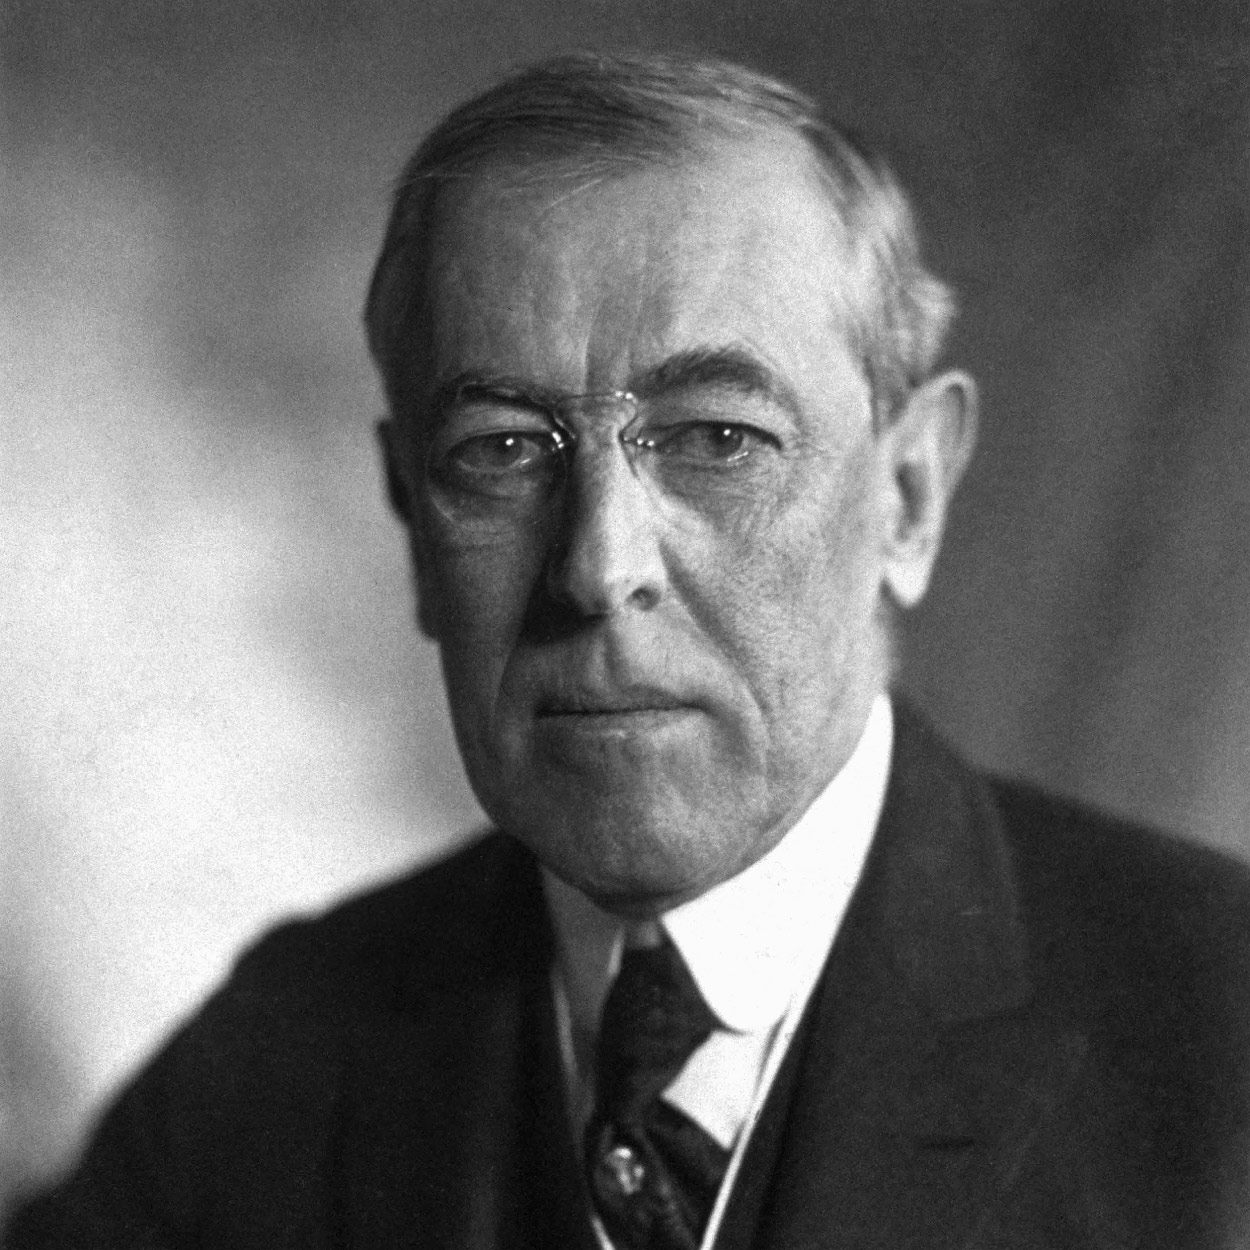 Portrait of Woodrow Wilson, the 28th President of the United States